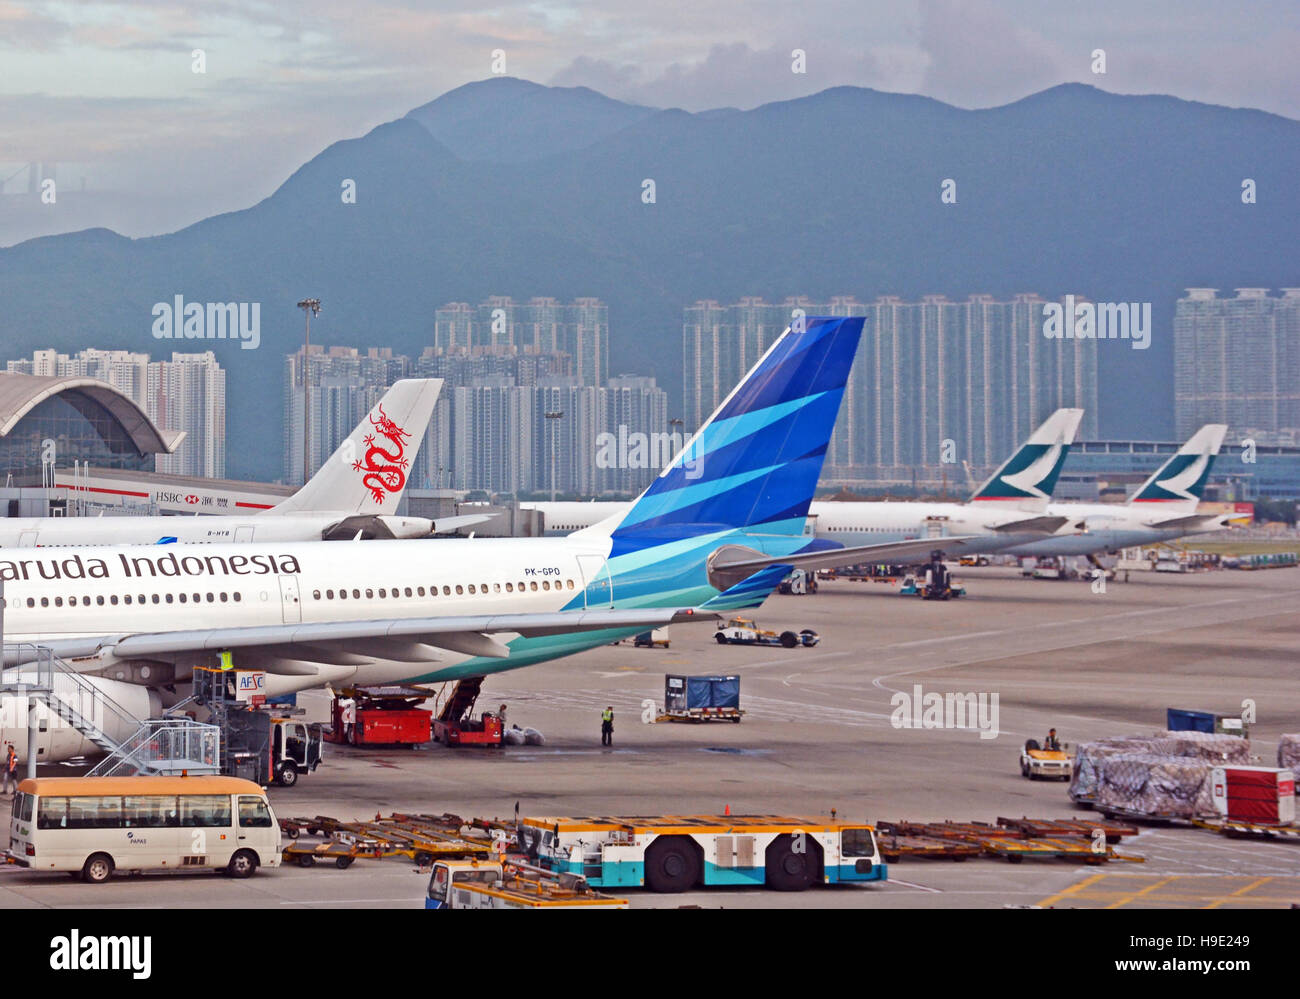 Garuda Indonesia Dragonair Cathay Pacific planes Hong Kong international airport - Stock Image